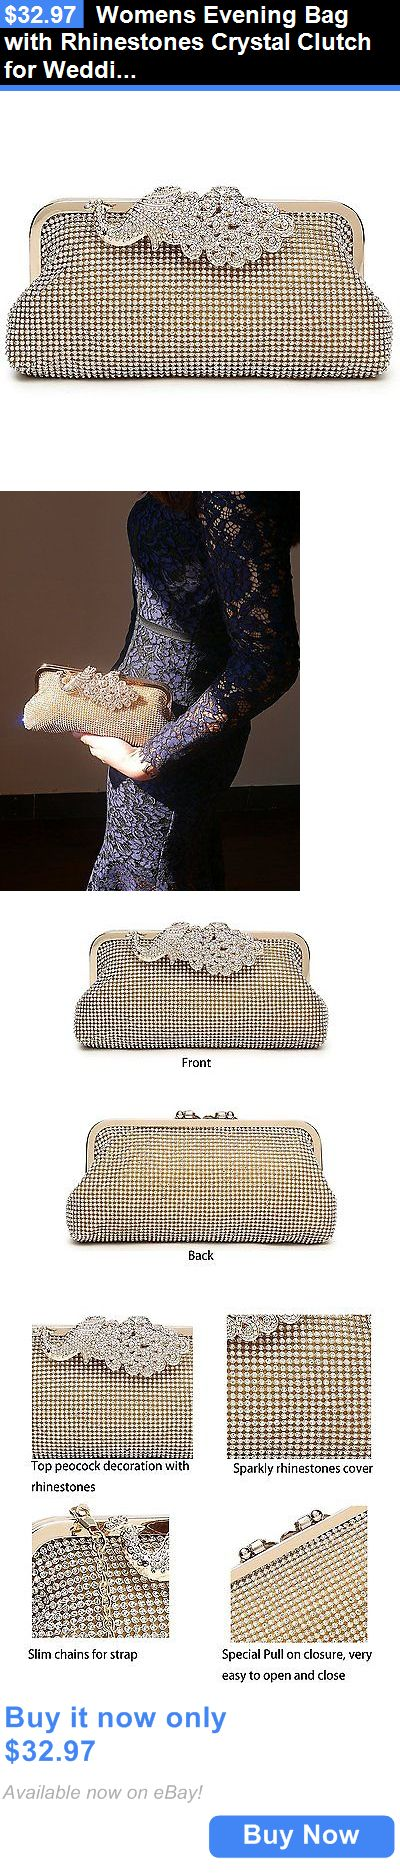 Bridal Handbags And Bags: Womens Evening Bag With Rhinestones Crystal Clutch For Wedding And Party BUY IT NOW ONLY: $32.97